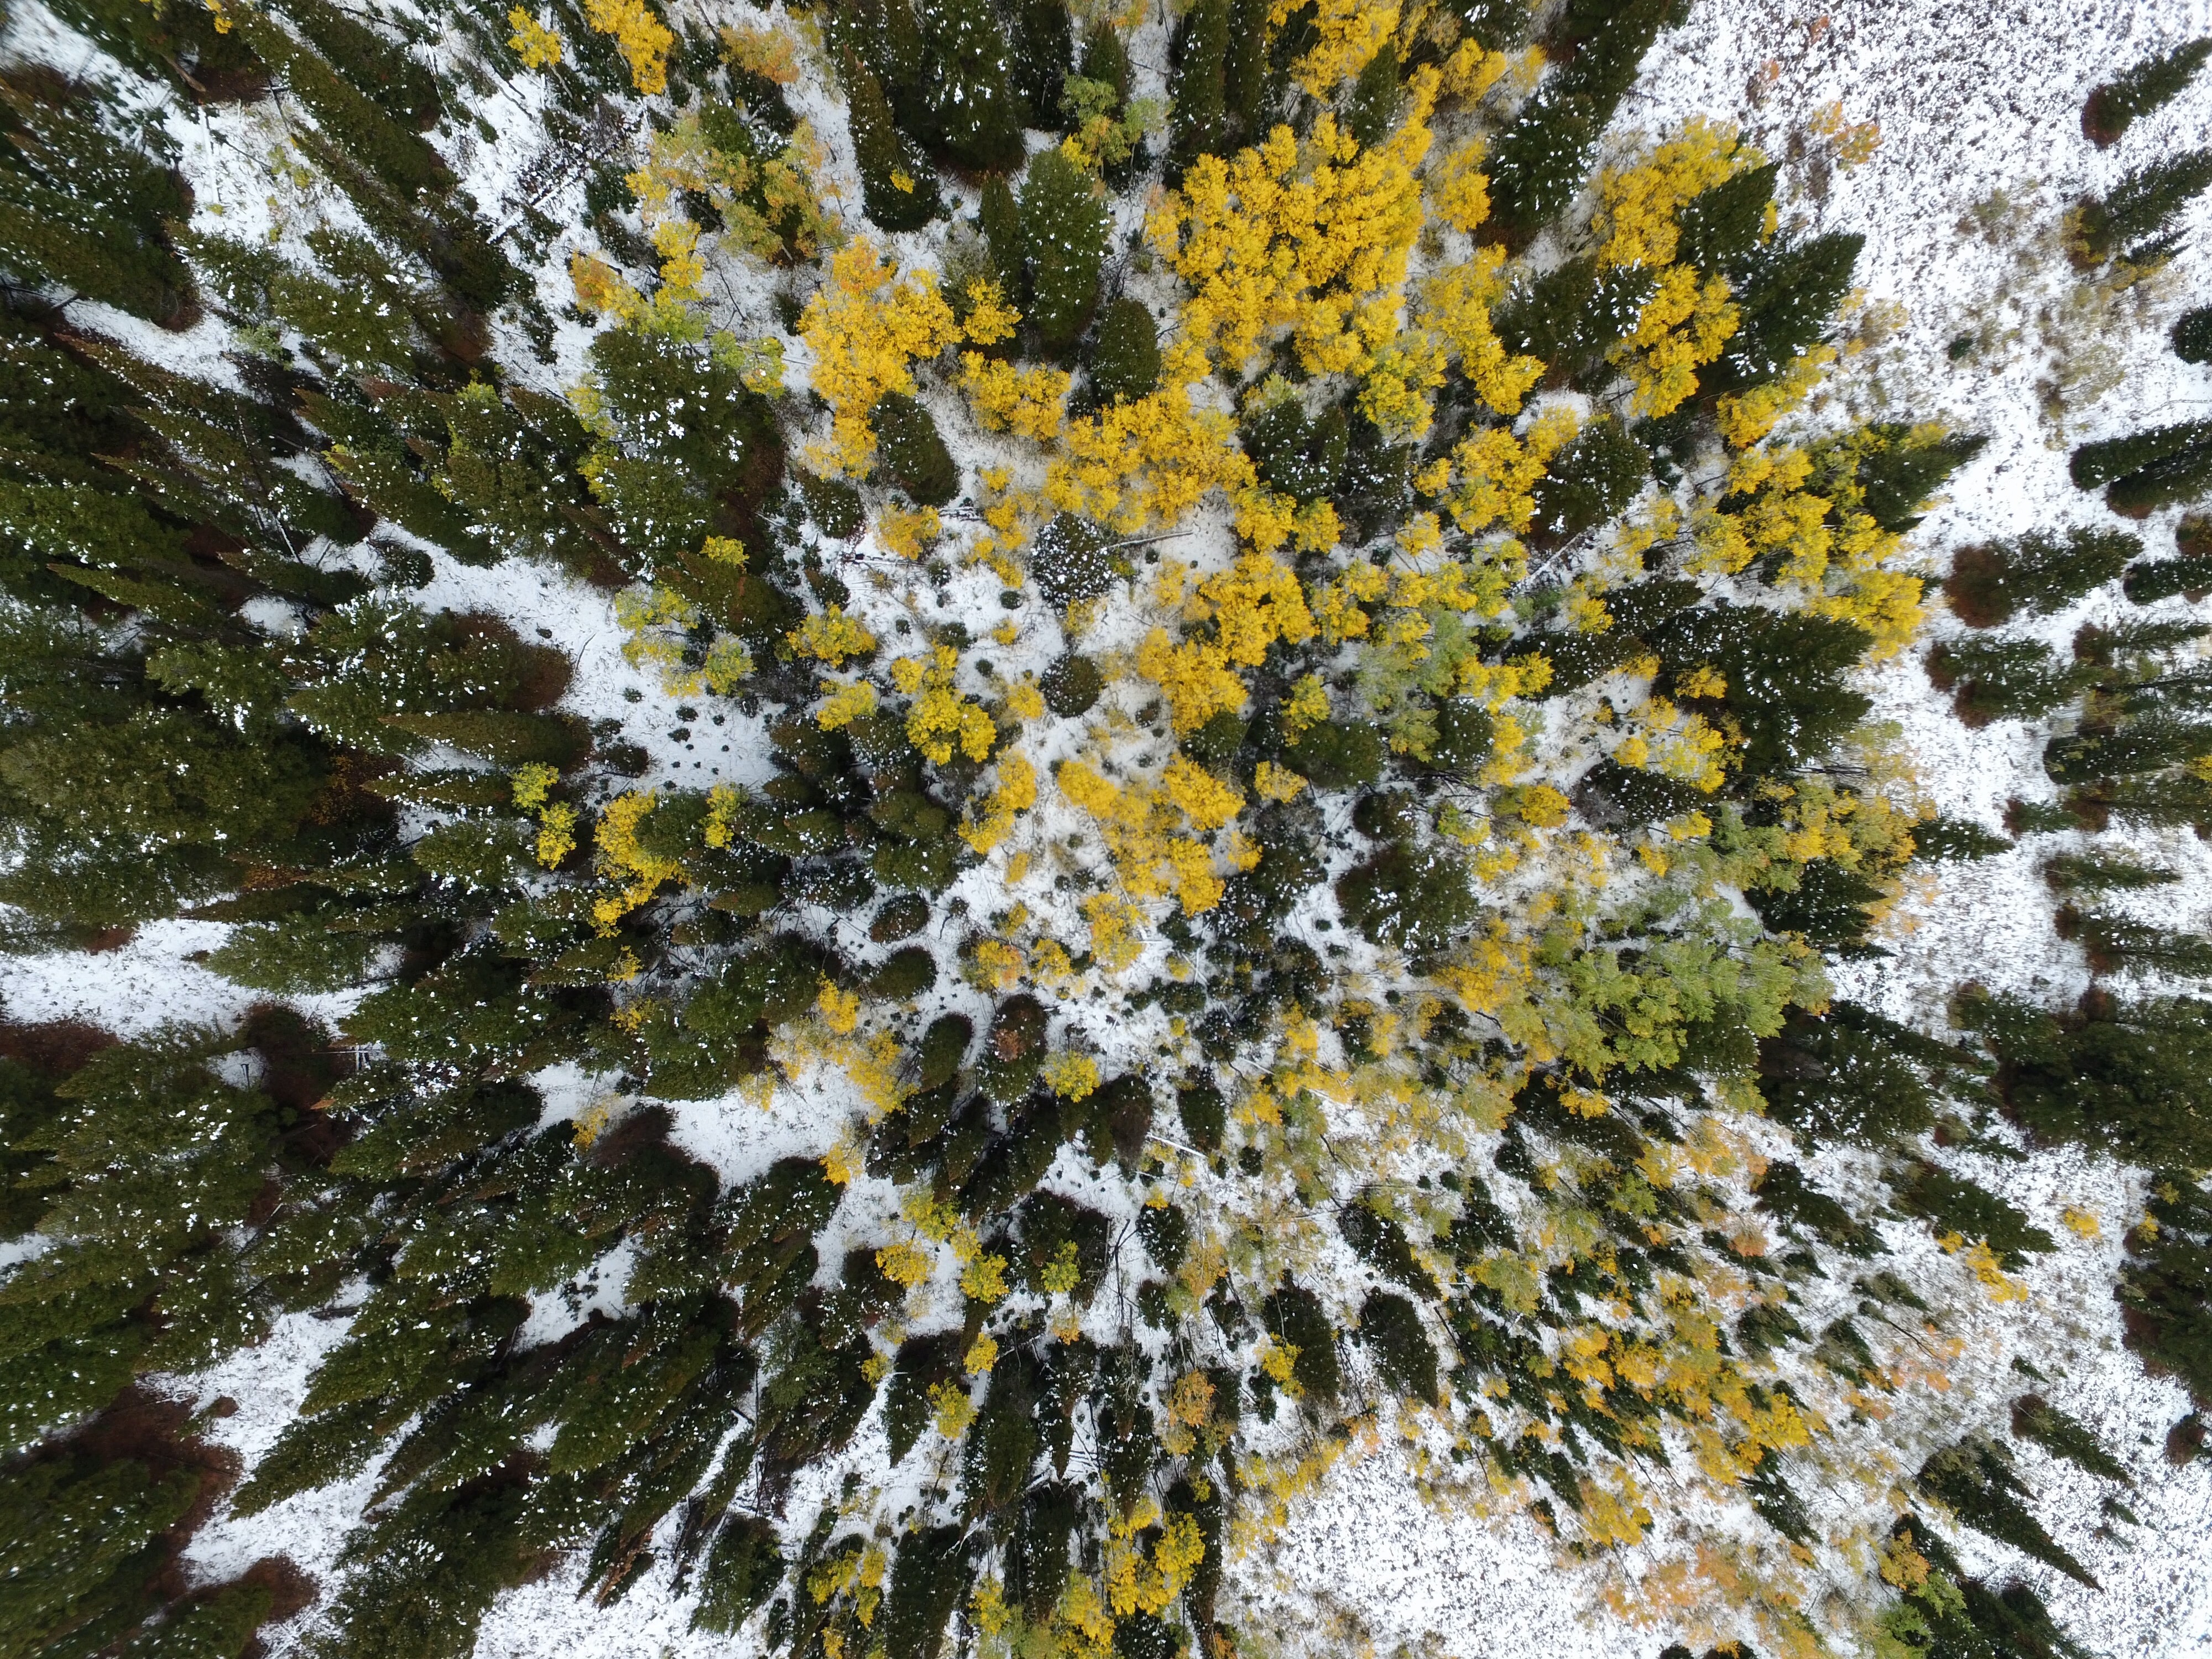 bird's eye view photography of tall green and yellow leafed trees